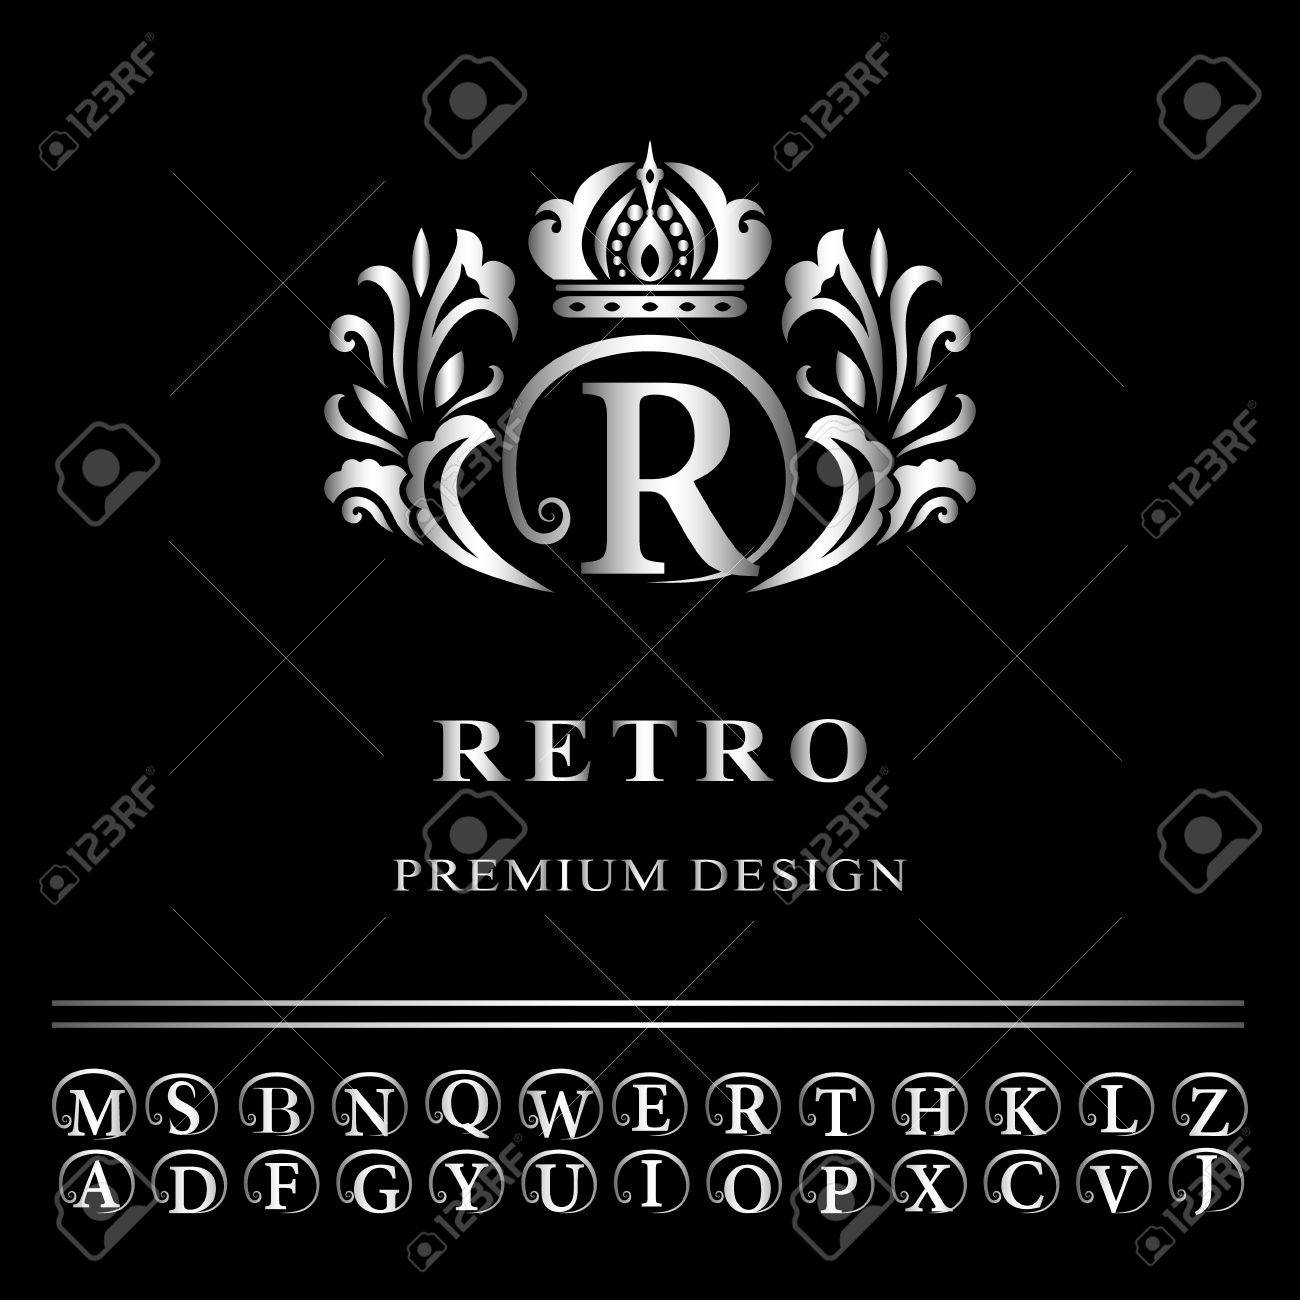 Vector illustration of monogram design elements graceful template vector illustration of monogram design elements graceful template elegant line art logo design pronofoot35fo Images